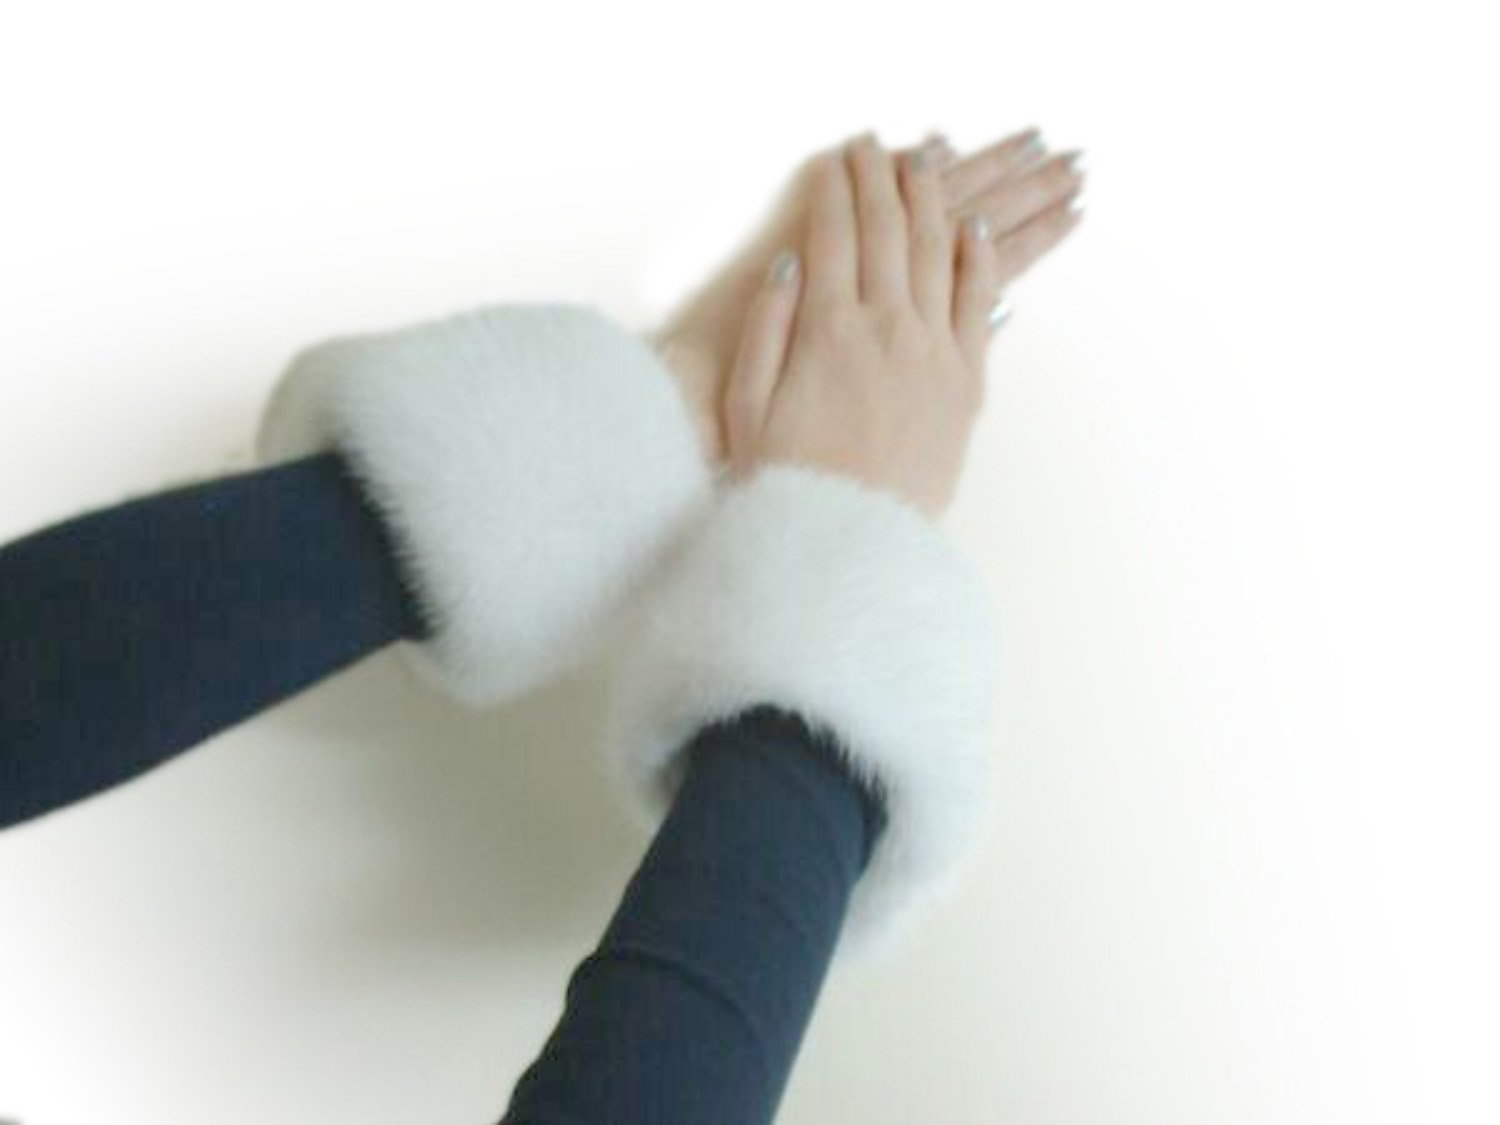 White or Slight Off-White Mink Cuffs w/Velcro Closure by FursNewYork